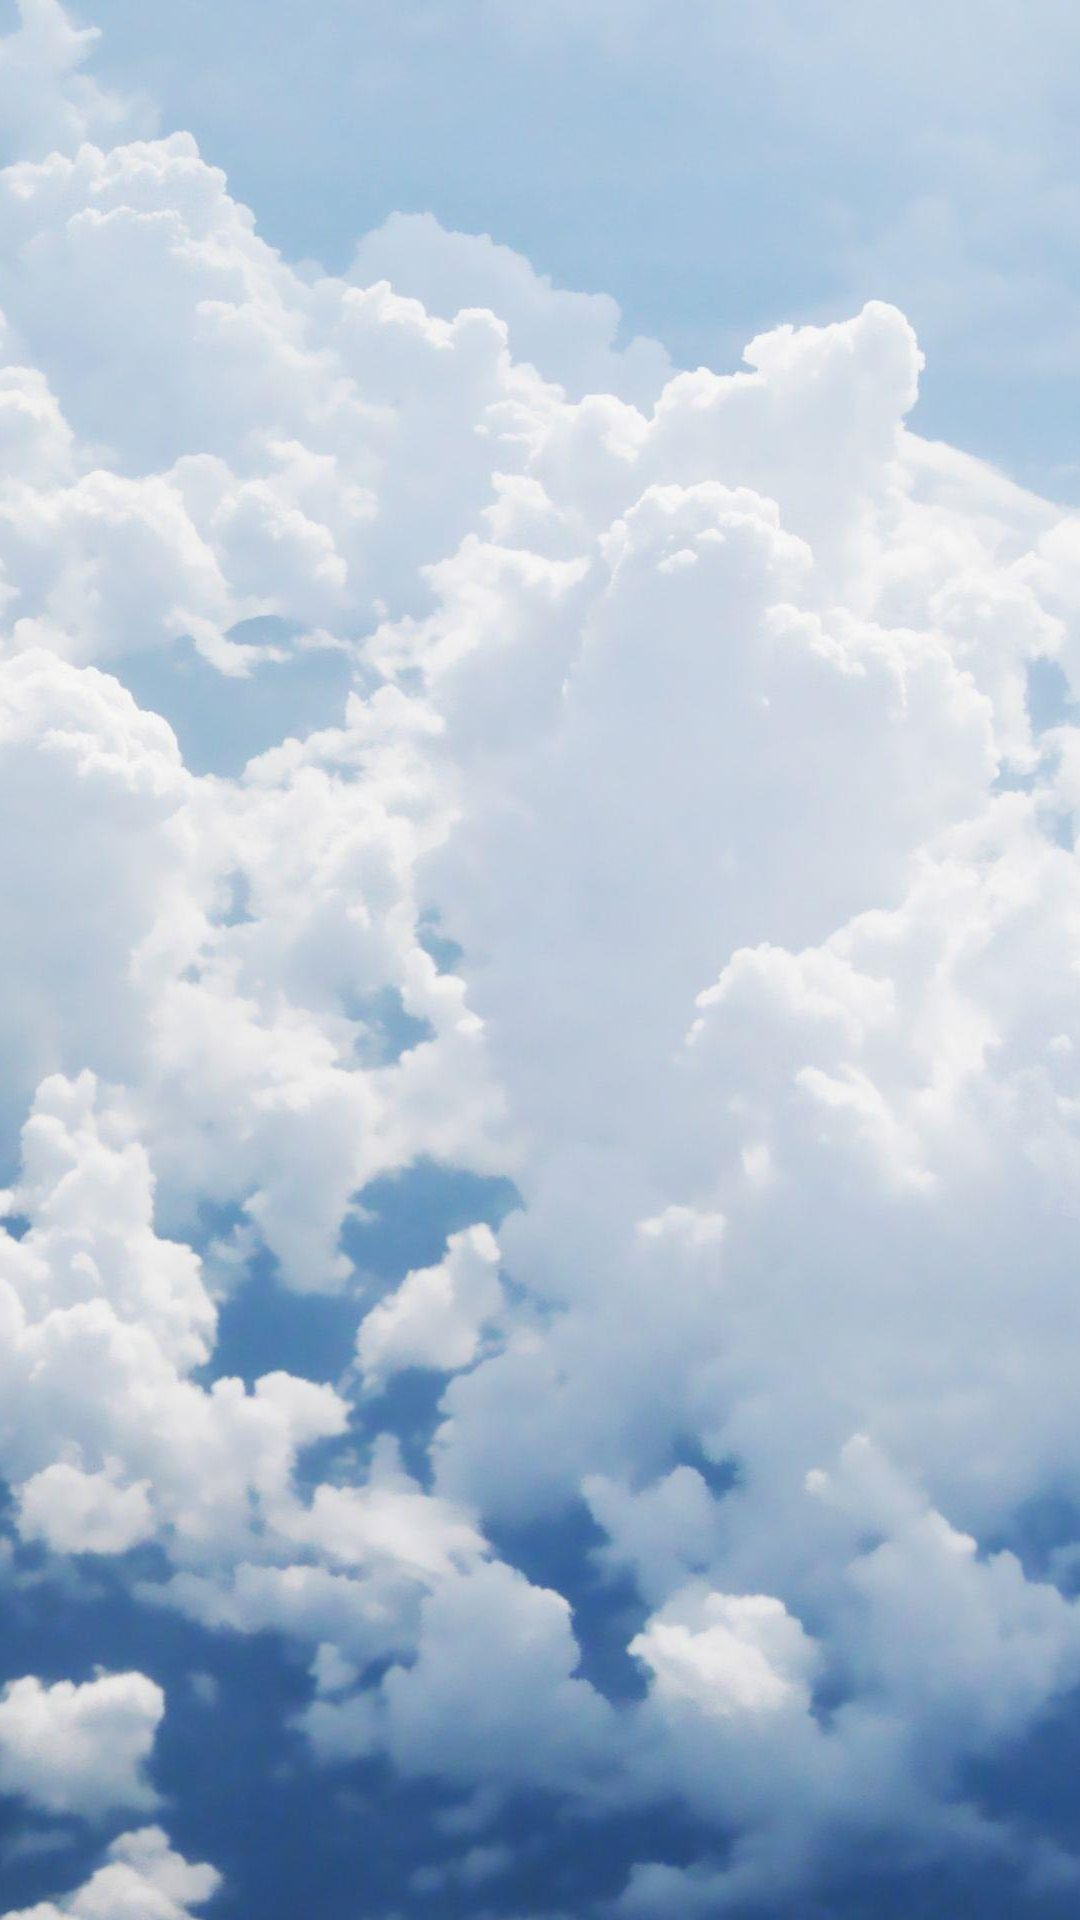 3d Wallpaper For Htc M8 Puffy Clouds Best Htc One Wallpapers Free And Easy To